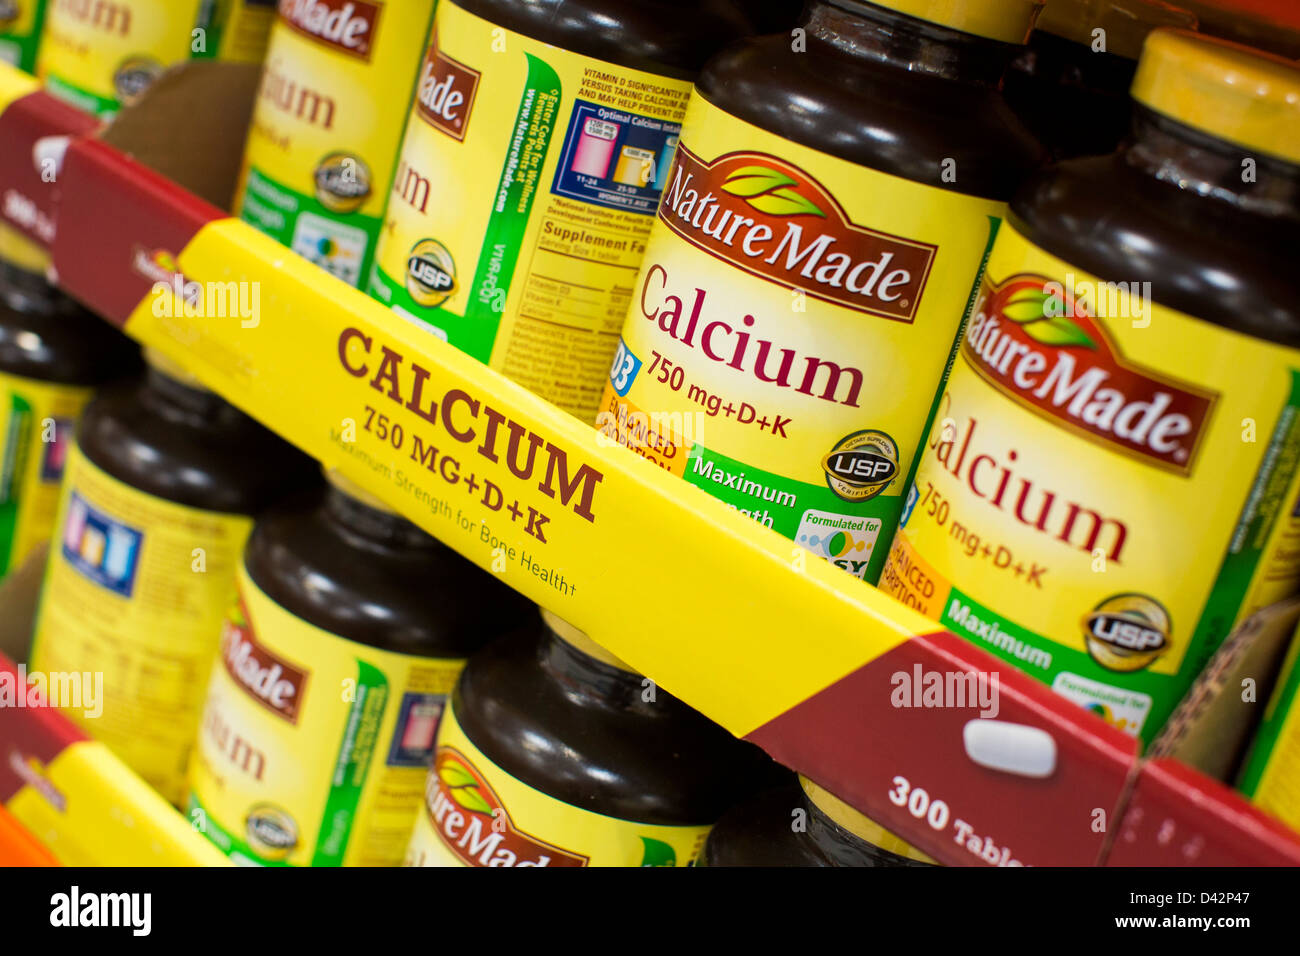 Calcium vitamins on display at a costco wholesale warehouse club calcium vitamins on display at a costco wholesale warehouse club stock photo 54150999 alamy thecheapjerseys Images